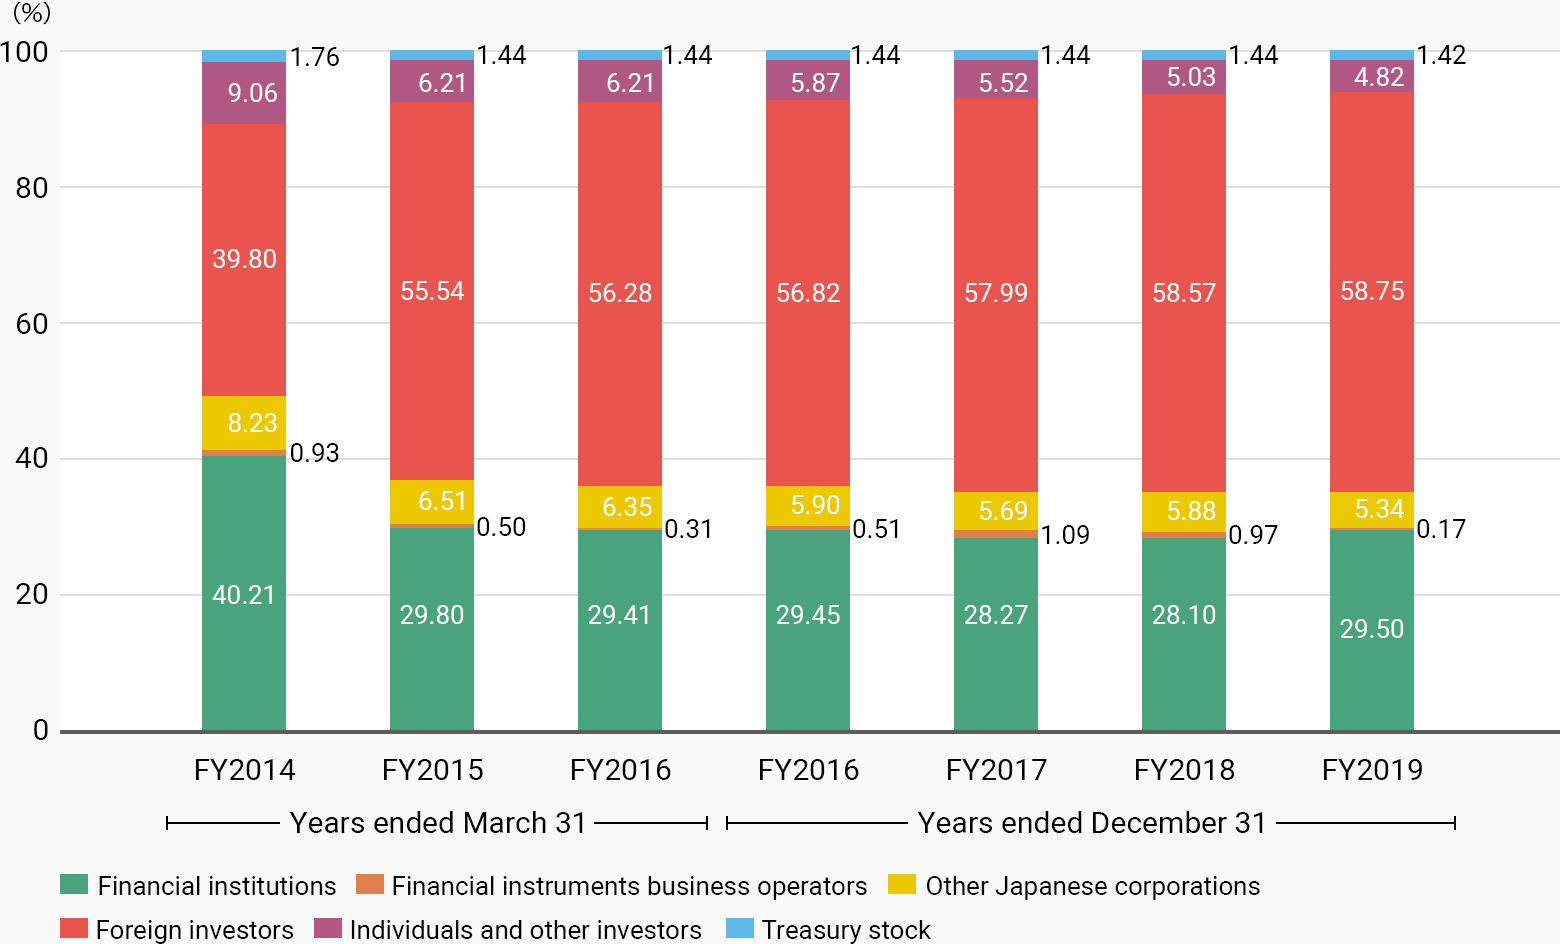 FY2014, Financial institutions 40.21%, Financial instruments business operators 0.93%, Other Japanese corporations 8.23%, Foreign investors 39.80%, Individuals and other investors 9.06%, Treasury stock 1.76%. FY2015年, Financial institutions 29.80%, Financial instruments business operators 0.50%, Other Japanese corporations 6.51%, Foreign investors 55.54%, Individuals and other investors 6.21%, Treasury stock 1.44%. FY2016年, Financial institutions 29.80%, Financial instruments business operators 0.31%, Other Japanese corporations 6.35%, Foreign investors 56.28%, Individuals and other investors 6.21%, Treasury stock 1.44%. FY2016年, Financial institutions 29.45%, Financial instruments business operators 0.51%, Other Japanese corporations 5.90%, Foreign investors 56.82%, Individuals and other investors 5.87%, Treasury stock 1.44%. FY2017, Financial institutions 28.27%, Financial instruments business operators 1.09%, Other Japanese corporations 5.69%, Foreign investors 57.99%, Individuals and other investors 5.52%, Treasury stock 1.44%. FY2018, Financial institutions 28.10%, Financial instruments business operators 0.97%, Other Japanese corporations 5.88%, Foreign investors 58.57%, Individuals and other investors 5.03%, Treasury stock 1.44%. FY2019, Financial institutions 29.50%, Financial instruments business operators 0.17%, Other Japanese corporations 5.34%, Foreign investors 58.75%, Individuals and other investors 4.82%, Treasury stock 1.42%.